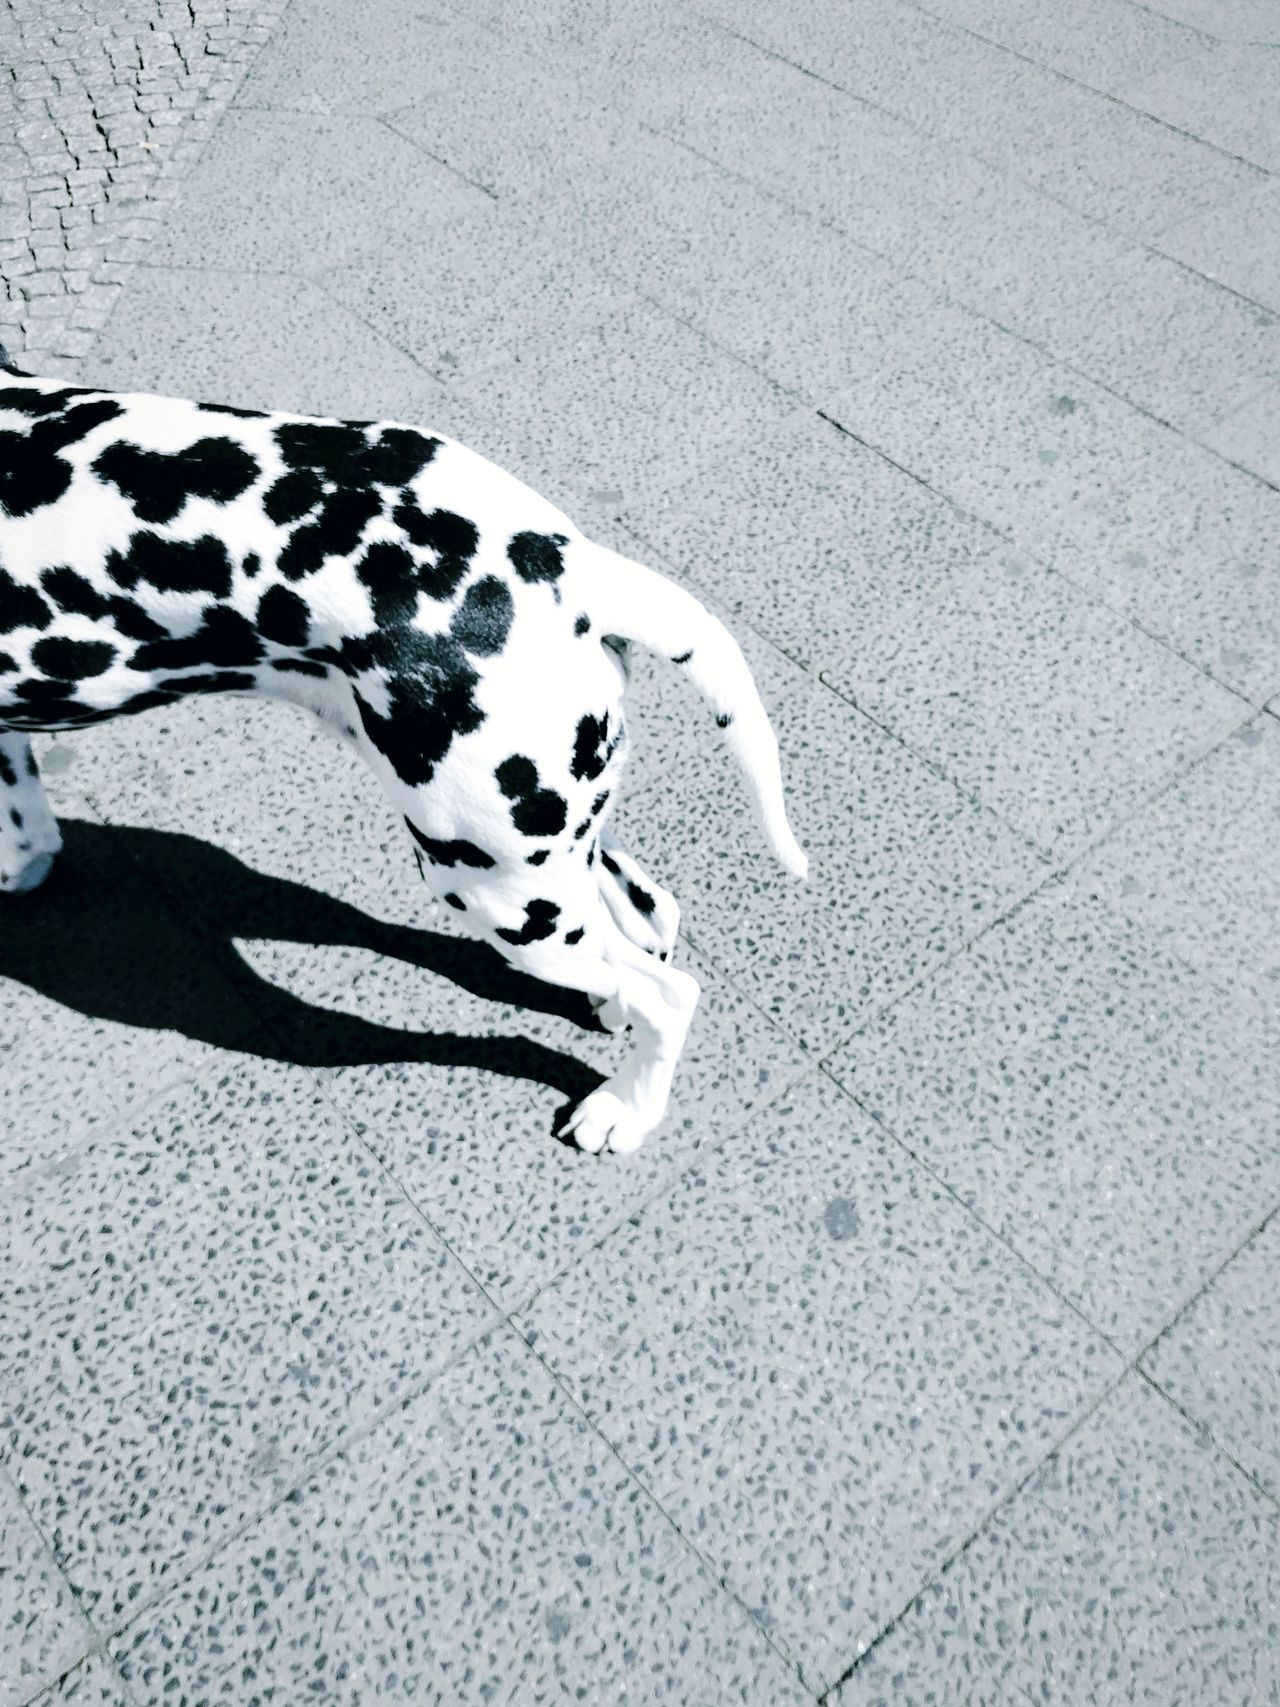 Dalmatian Dog One Animal Dog Pets Spotted Animal Themes Day No People Domestic Animals Street Life Streetphotography Street Photography Cute Dog  Blackandwhite Black & White Blackandwhite Photography Copy Space Backgrounds BYOPaper! The Street Photographer - 2017 EyeEm Awards Neighborhood Map Visual Feast